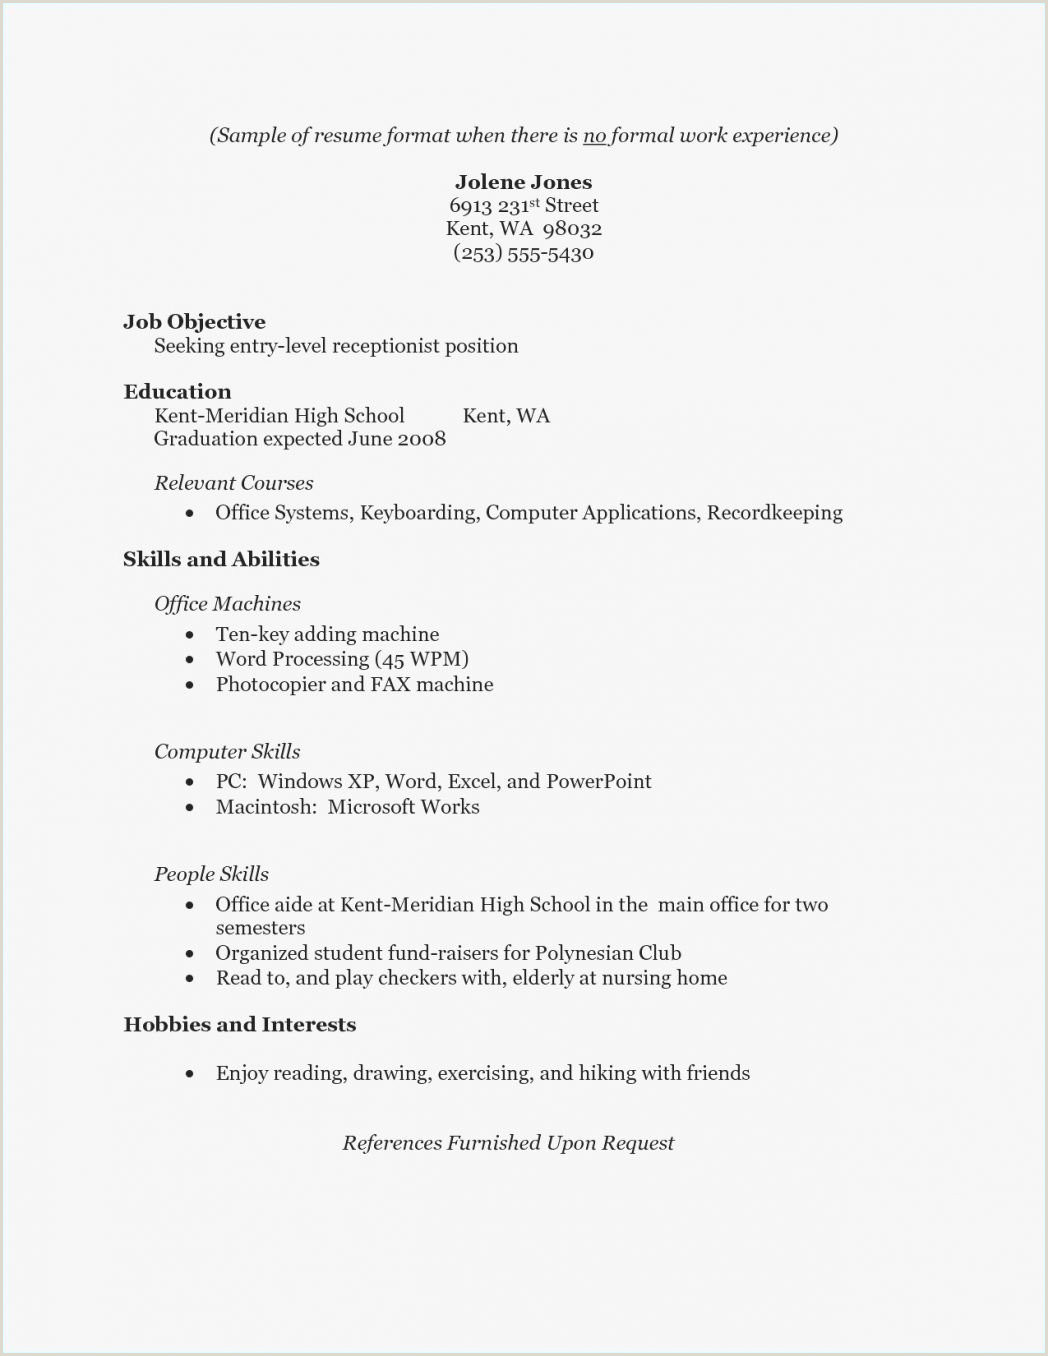 Resume format for No Job Experience Resume for Receptionist with No Experience Unique Nanny